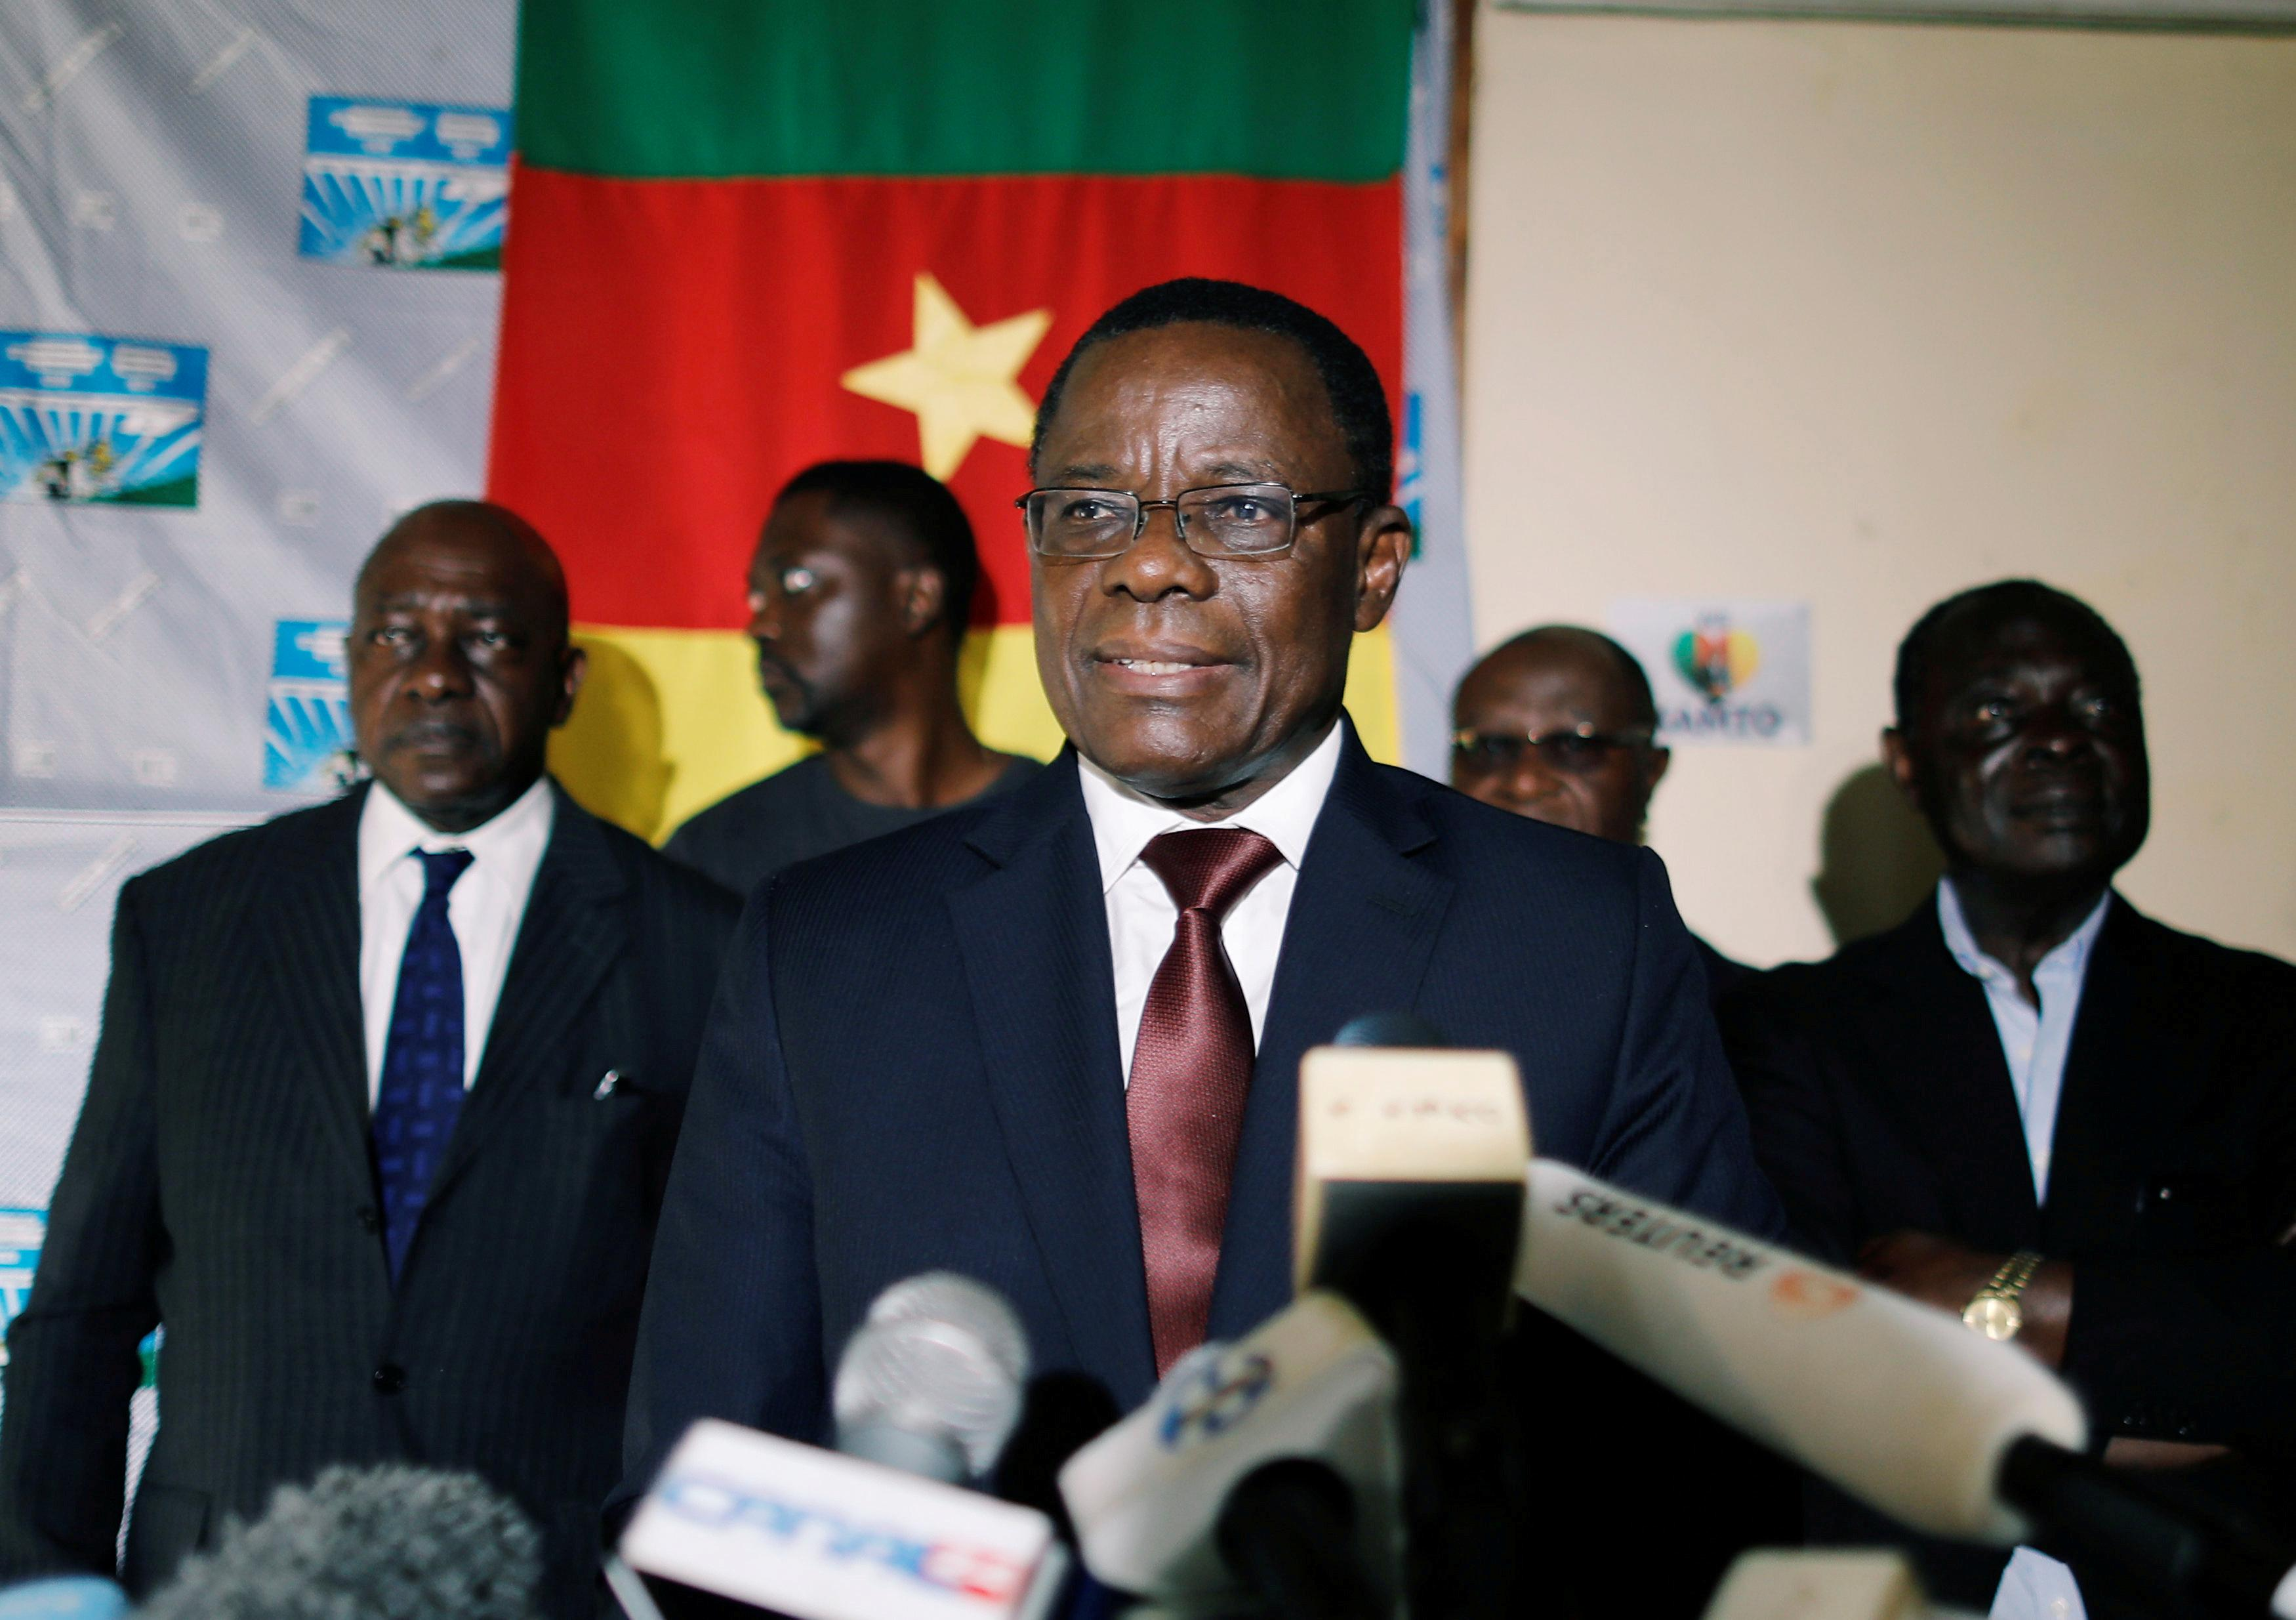 Cameroon president orders main rival freed in bid to calm tensions